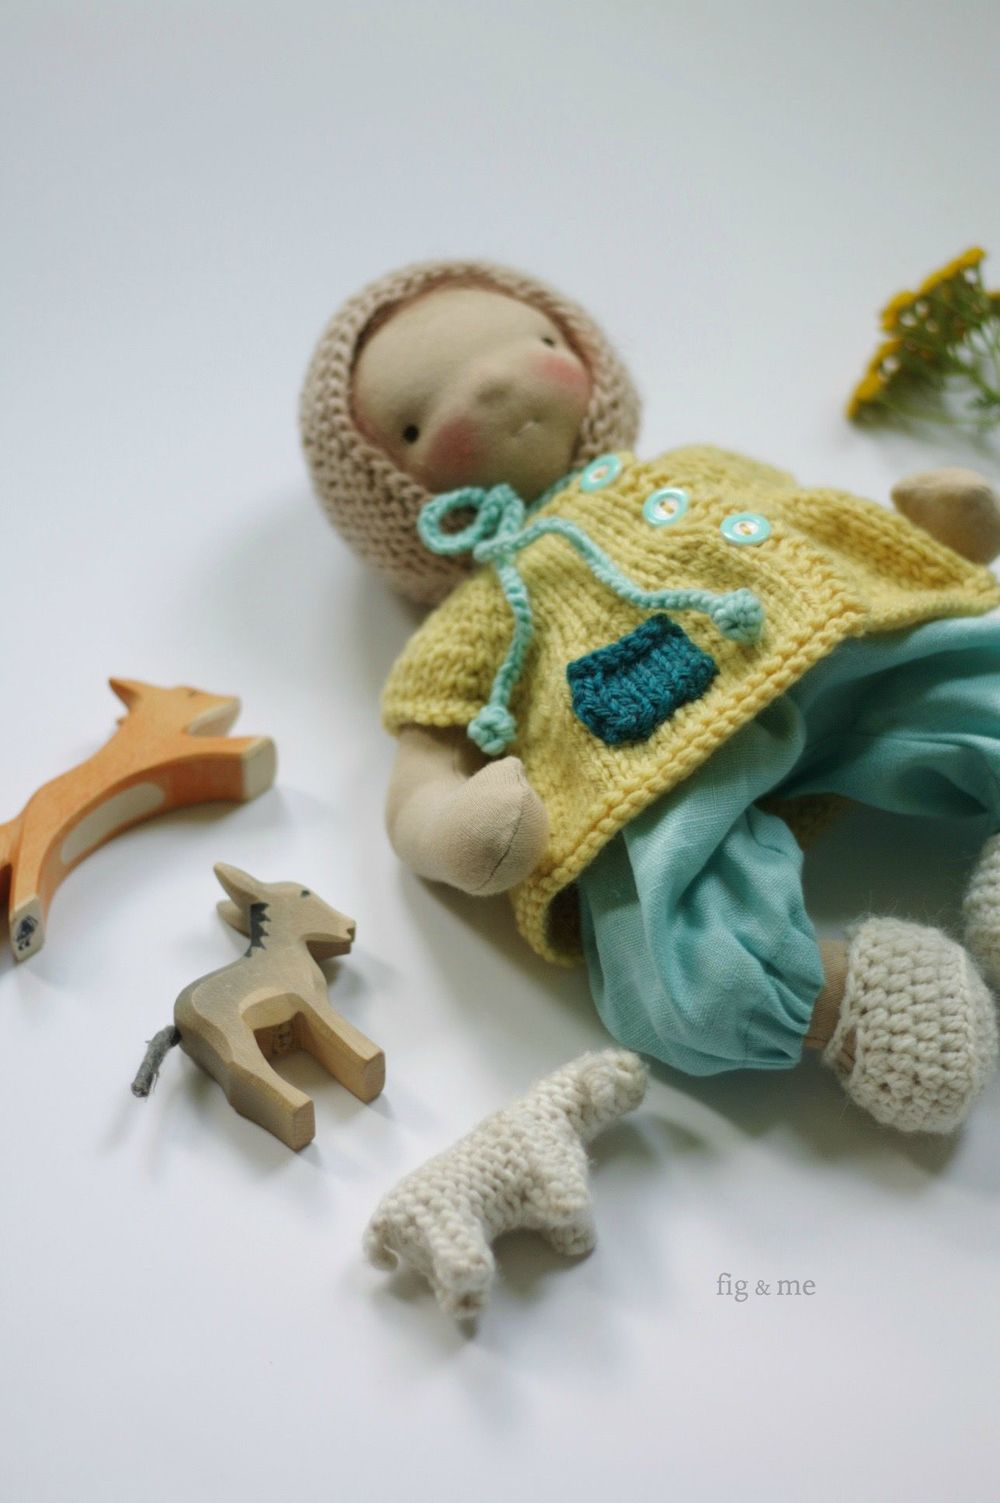 Baby Montserrat by Fig and me